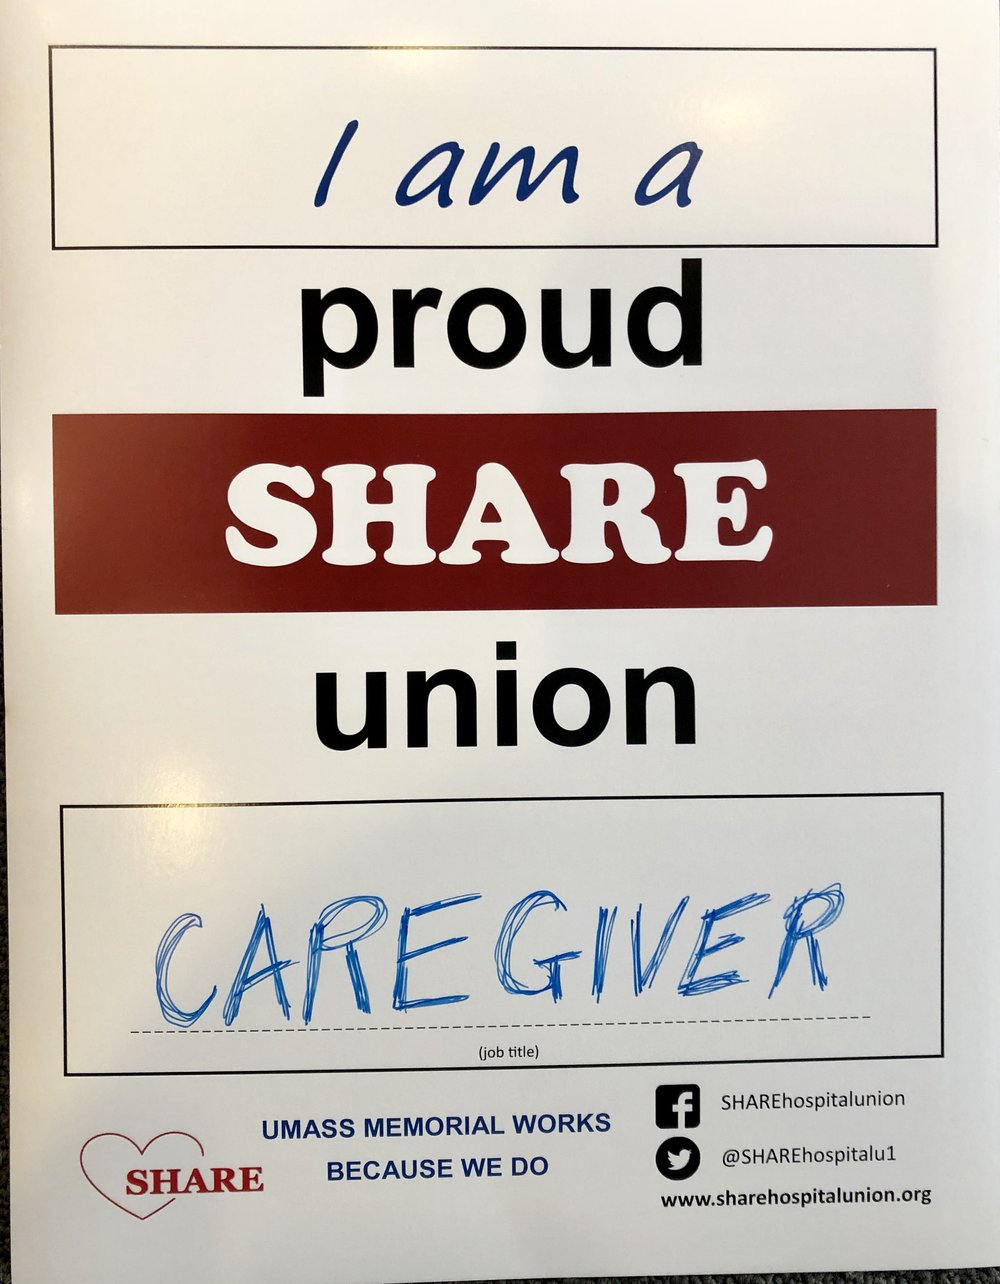 Over 2600 SHARE members in 170 job titles take care of Central Massachusetts